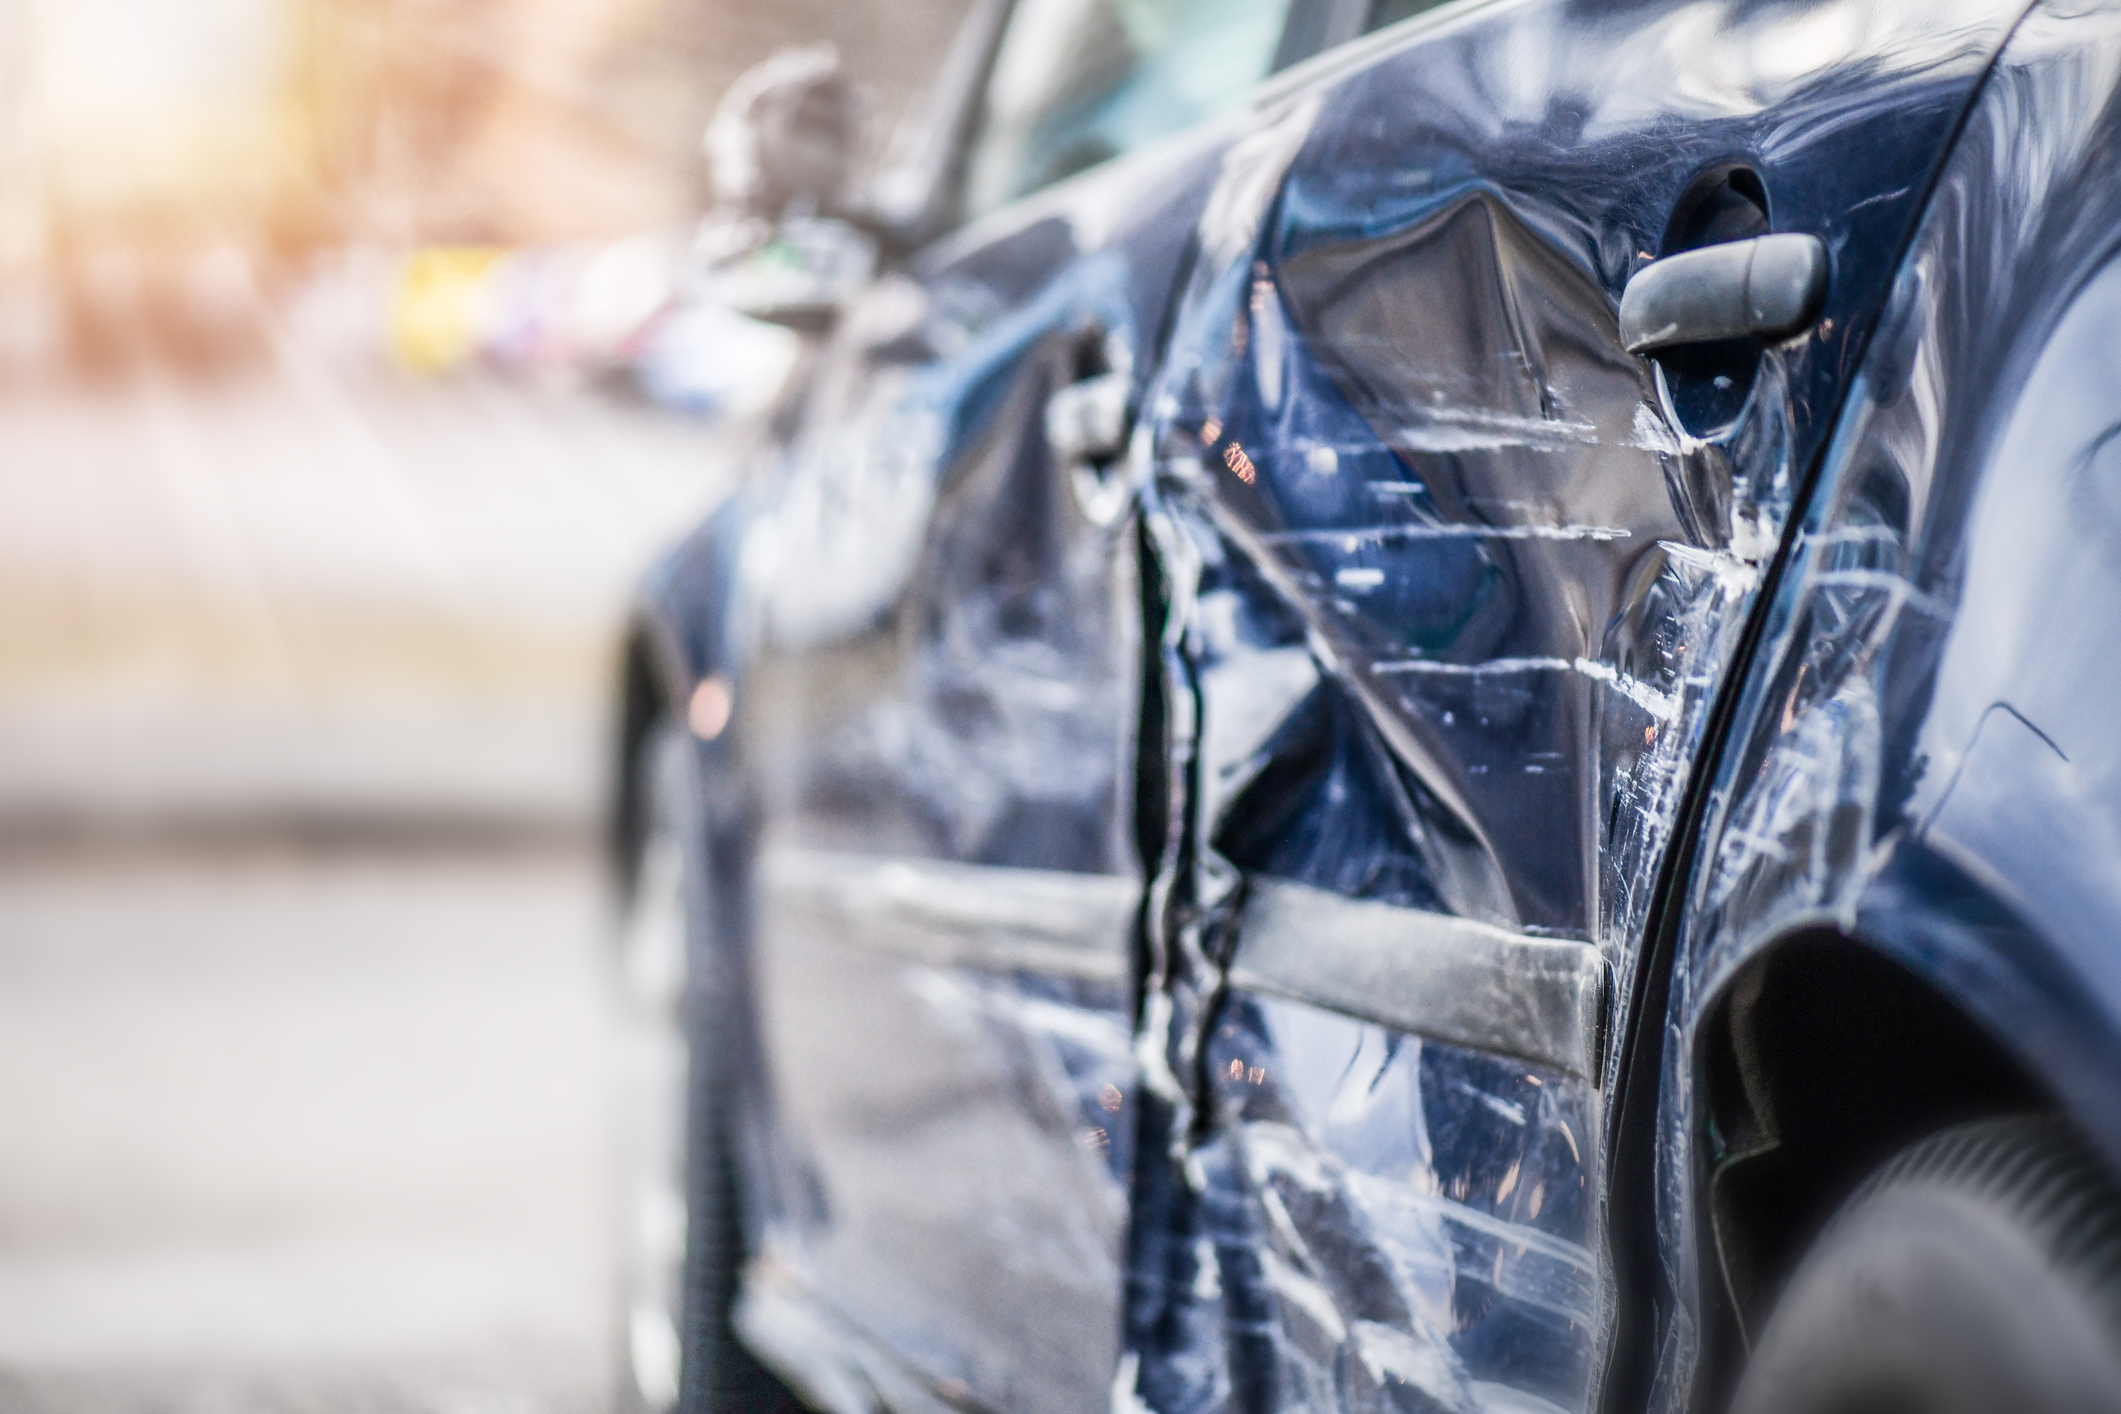 Damage to a car after an accident in Selma, AL.